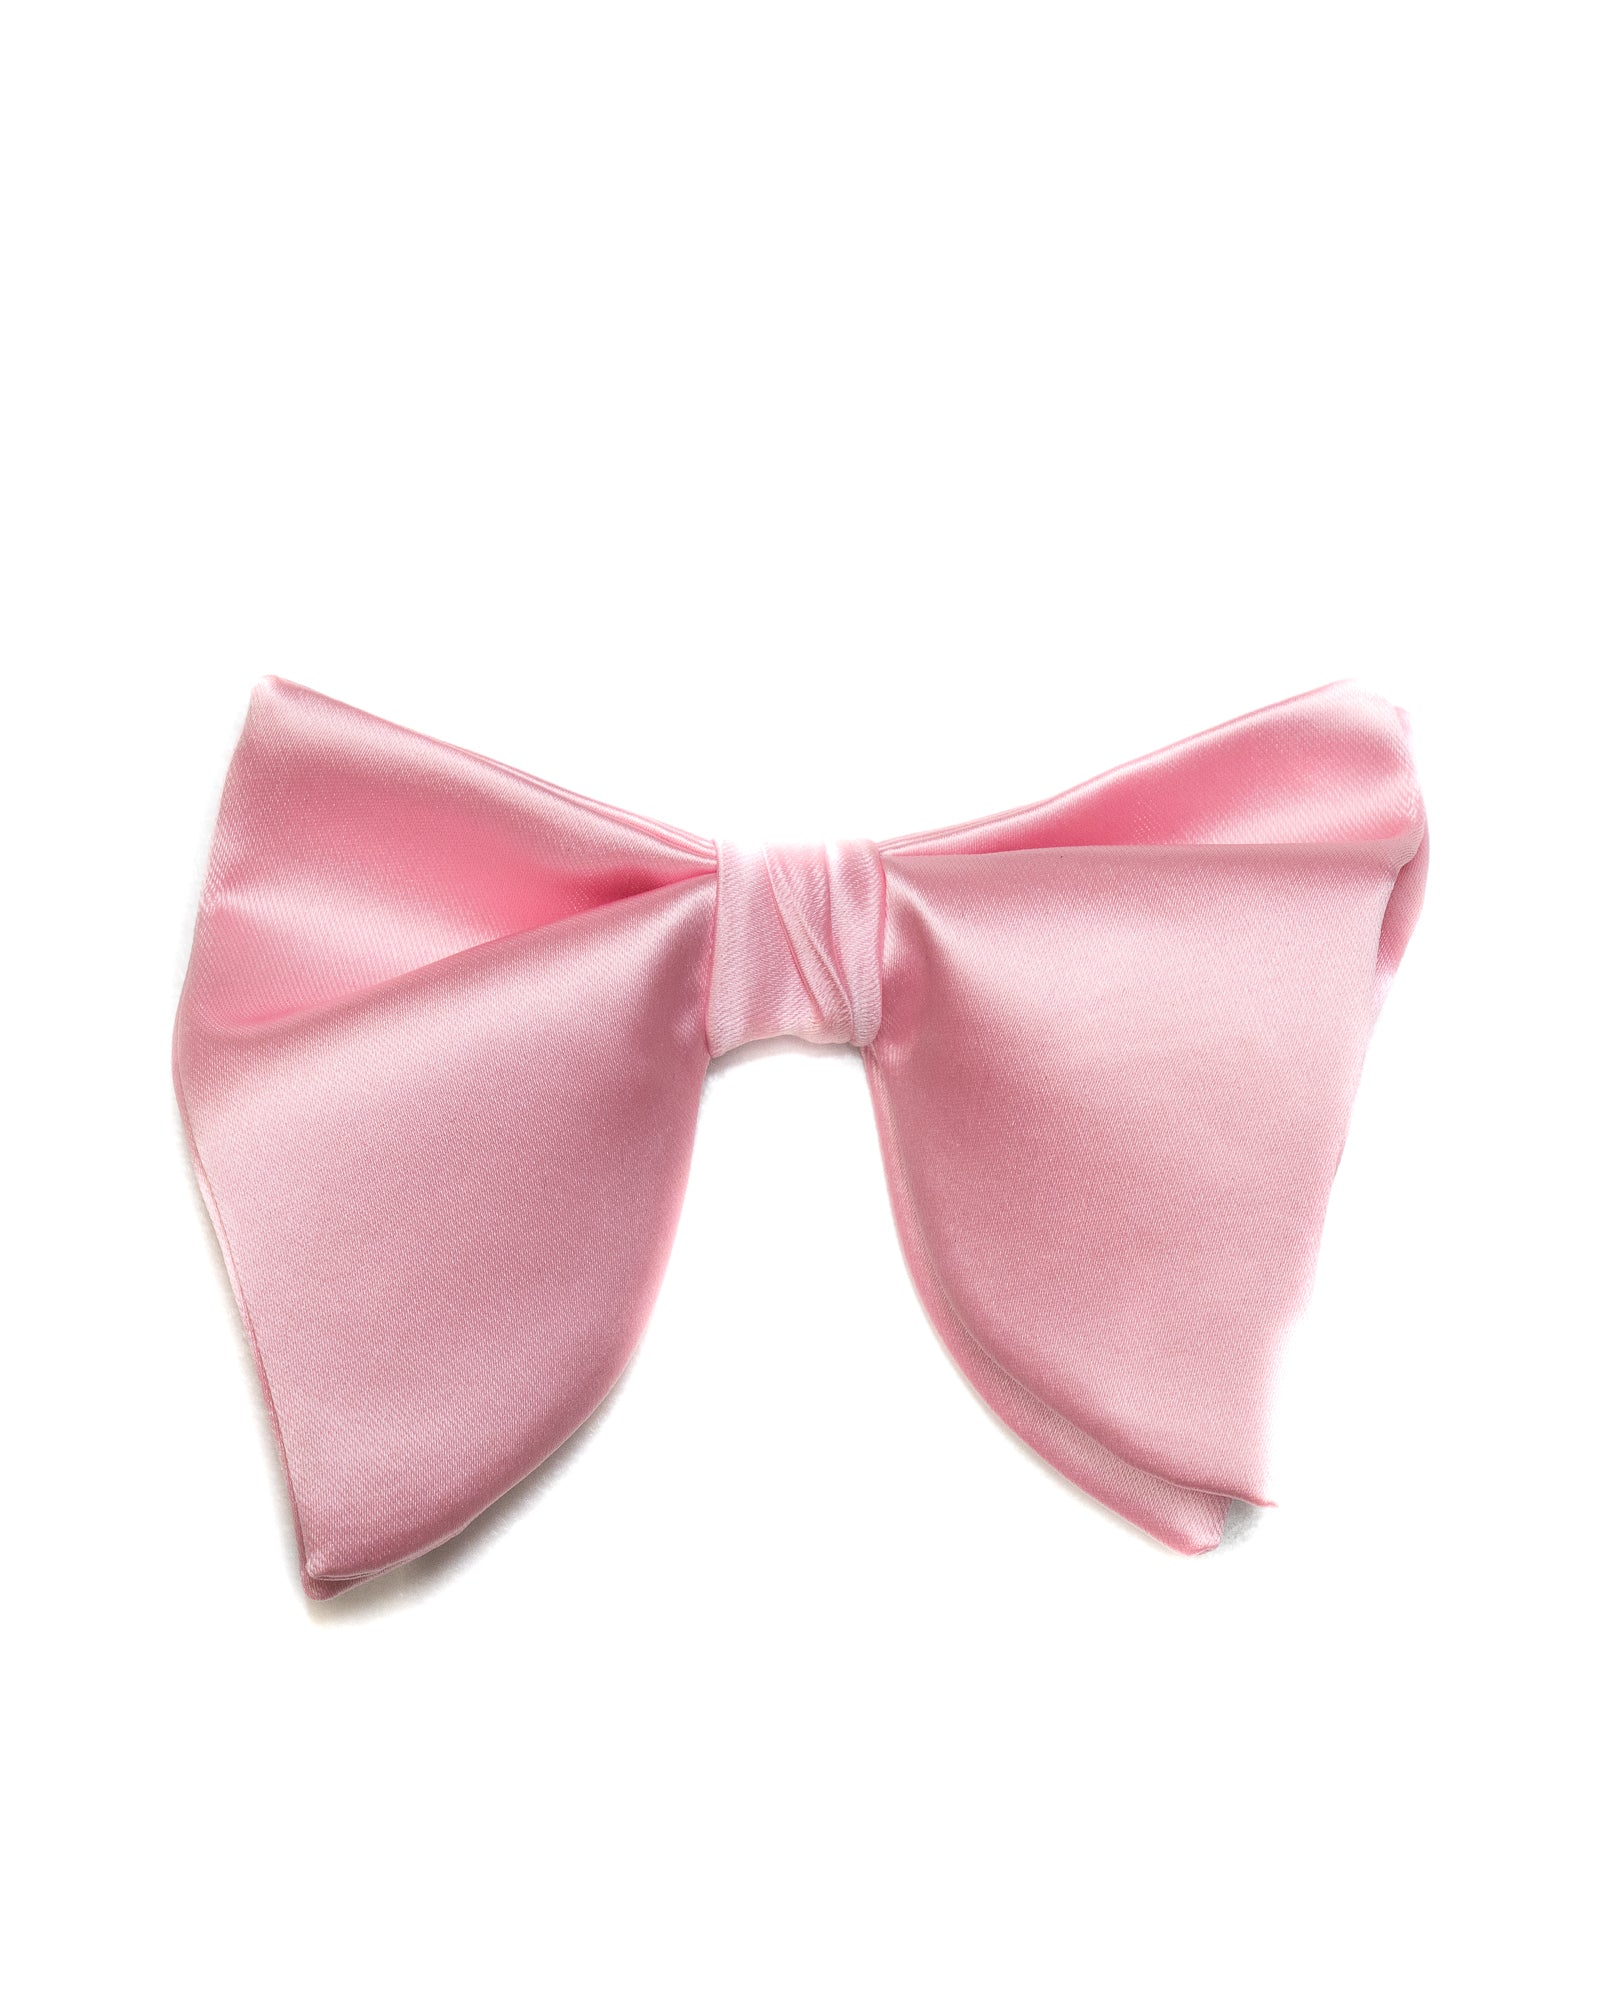 Bow Tie In Butterfly Shape Solid Satin Light Pink - Rainwater's